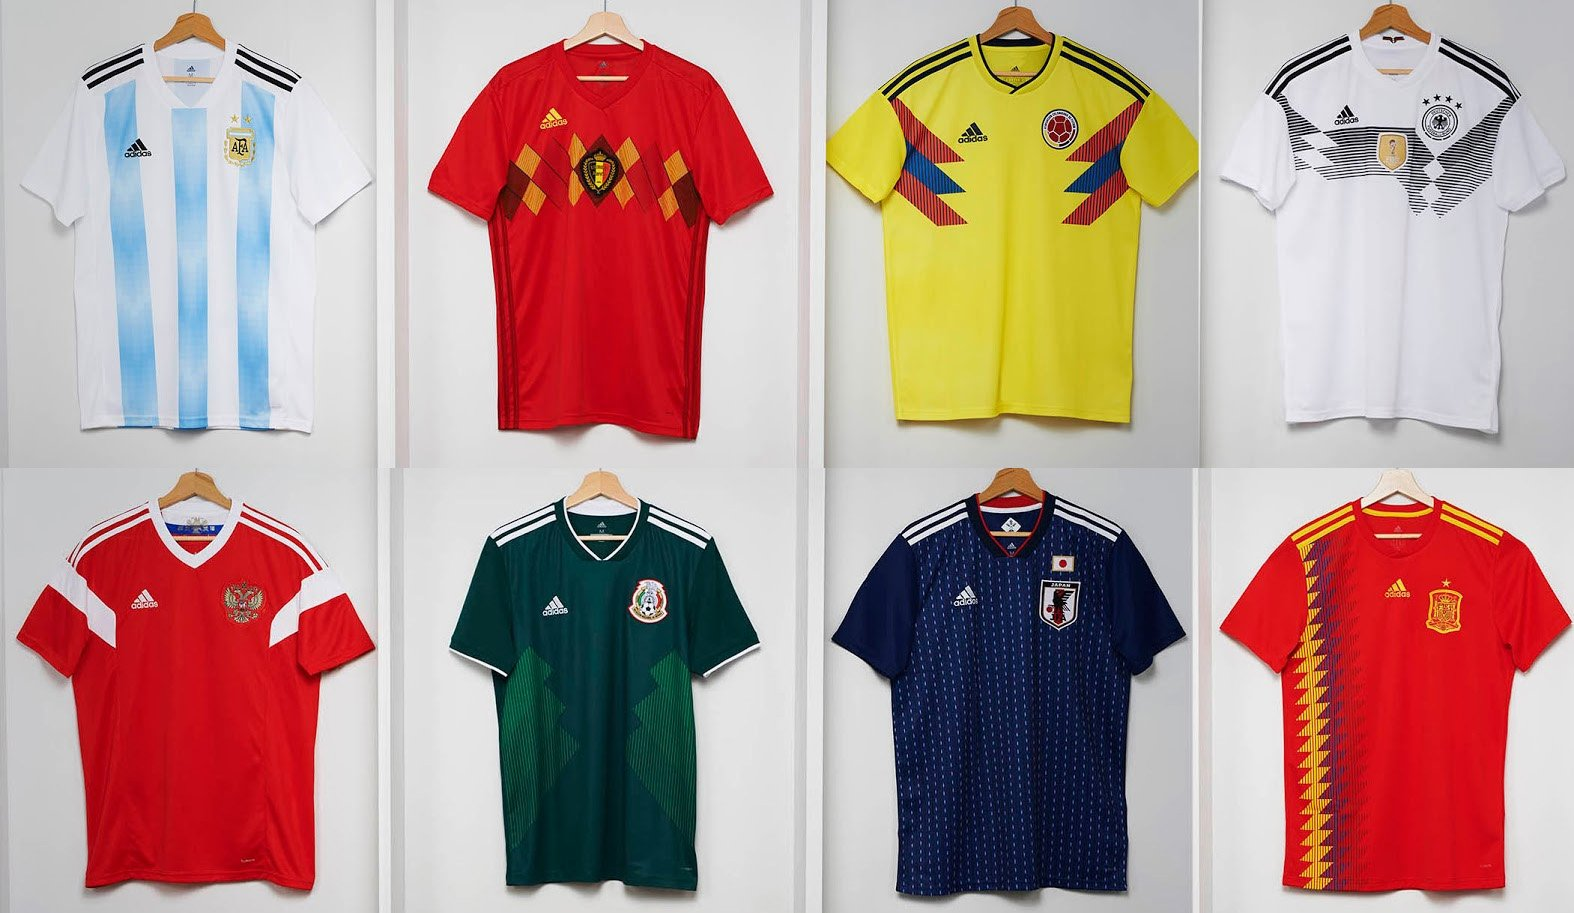 821e03f18b Os millennials mudaram até as camisetas da Copa do Mundo - 20 05 ...